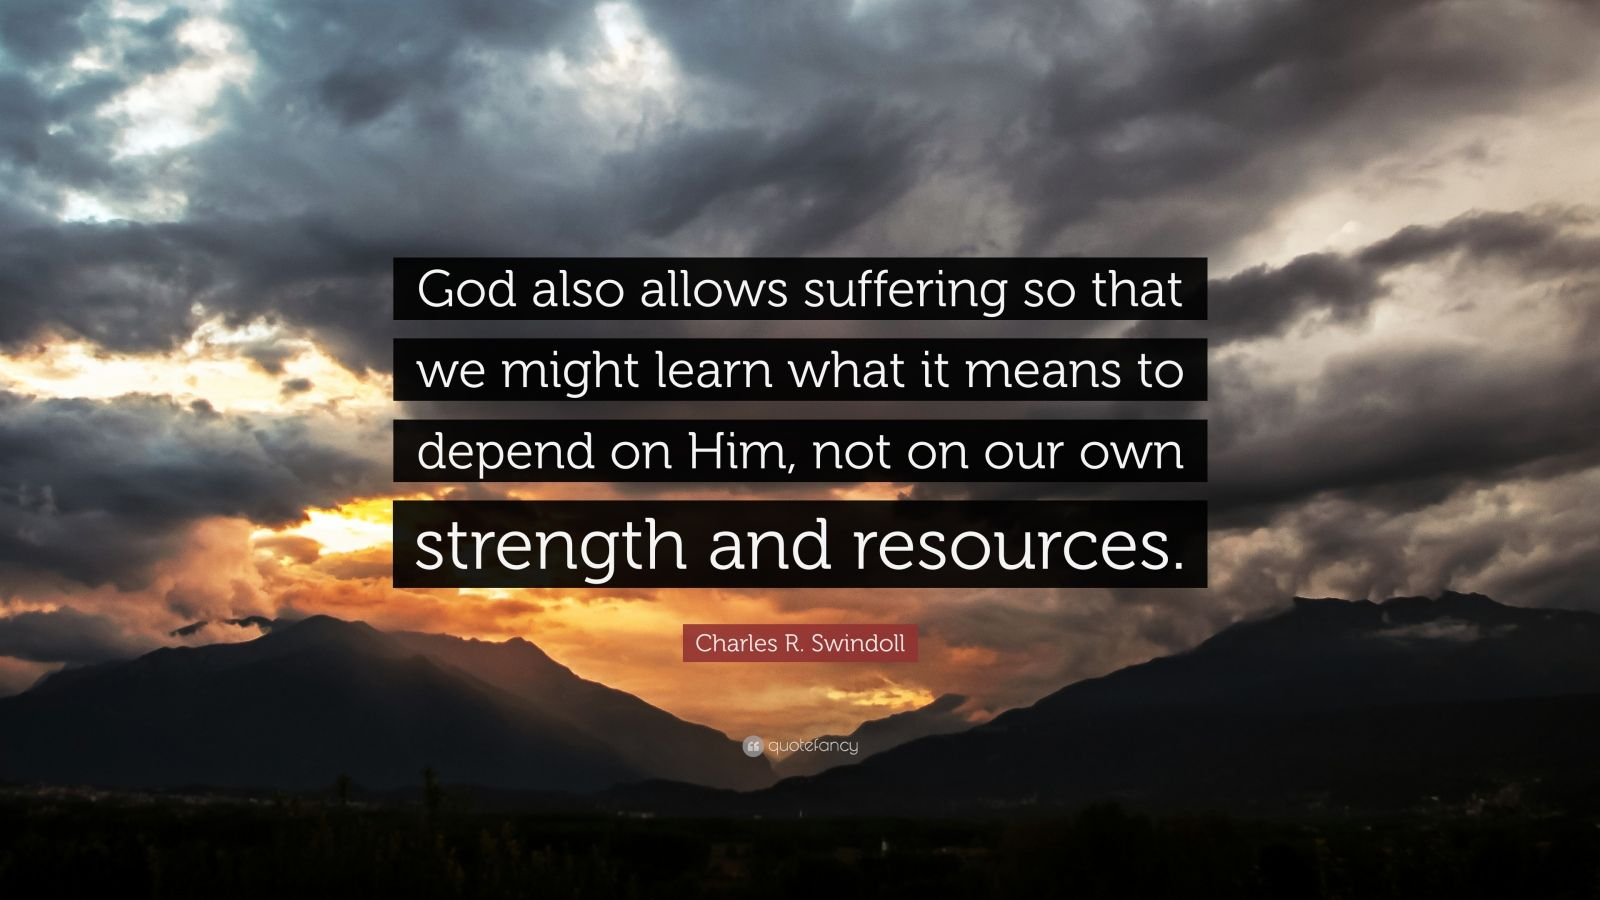 """Charles R. Swindoll Quote: """"God also allows suffering so that we might learn what it means to depend on Him, not on our own strength and resources."""""""